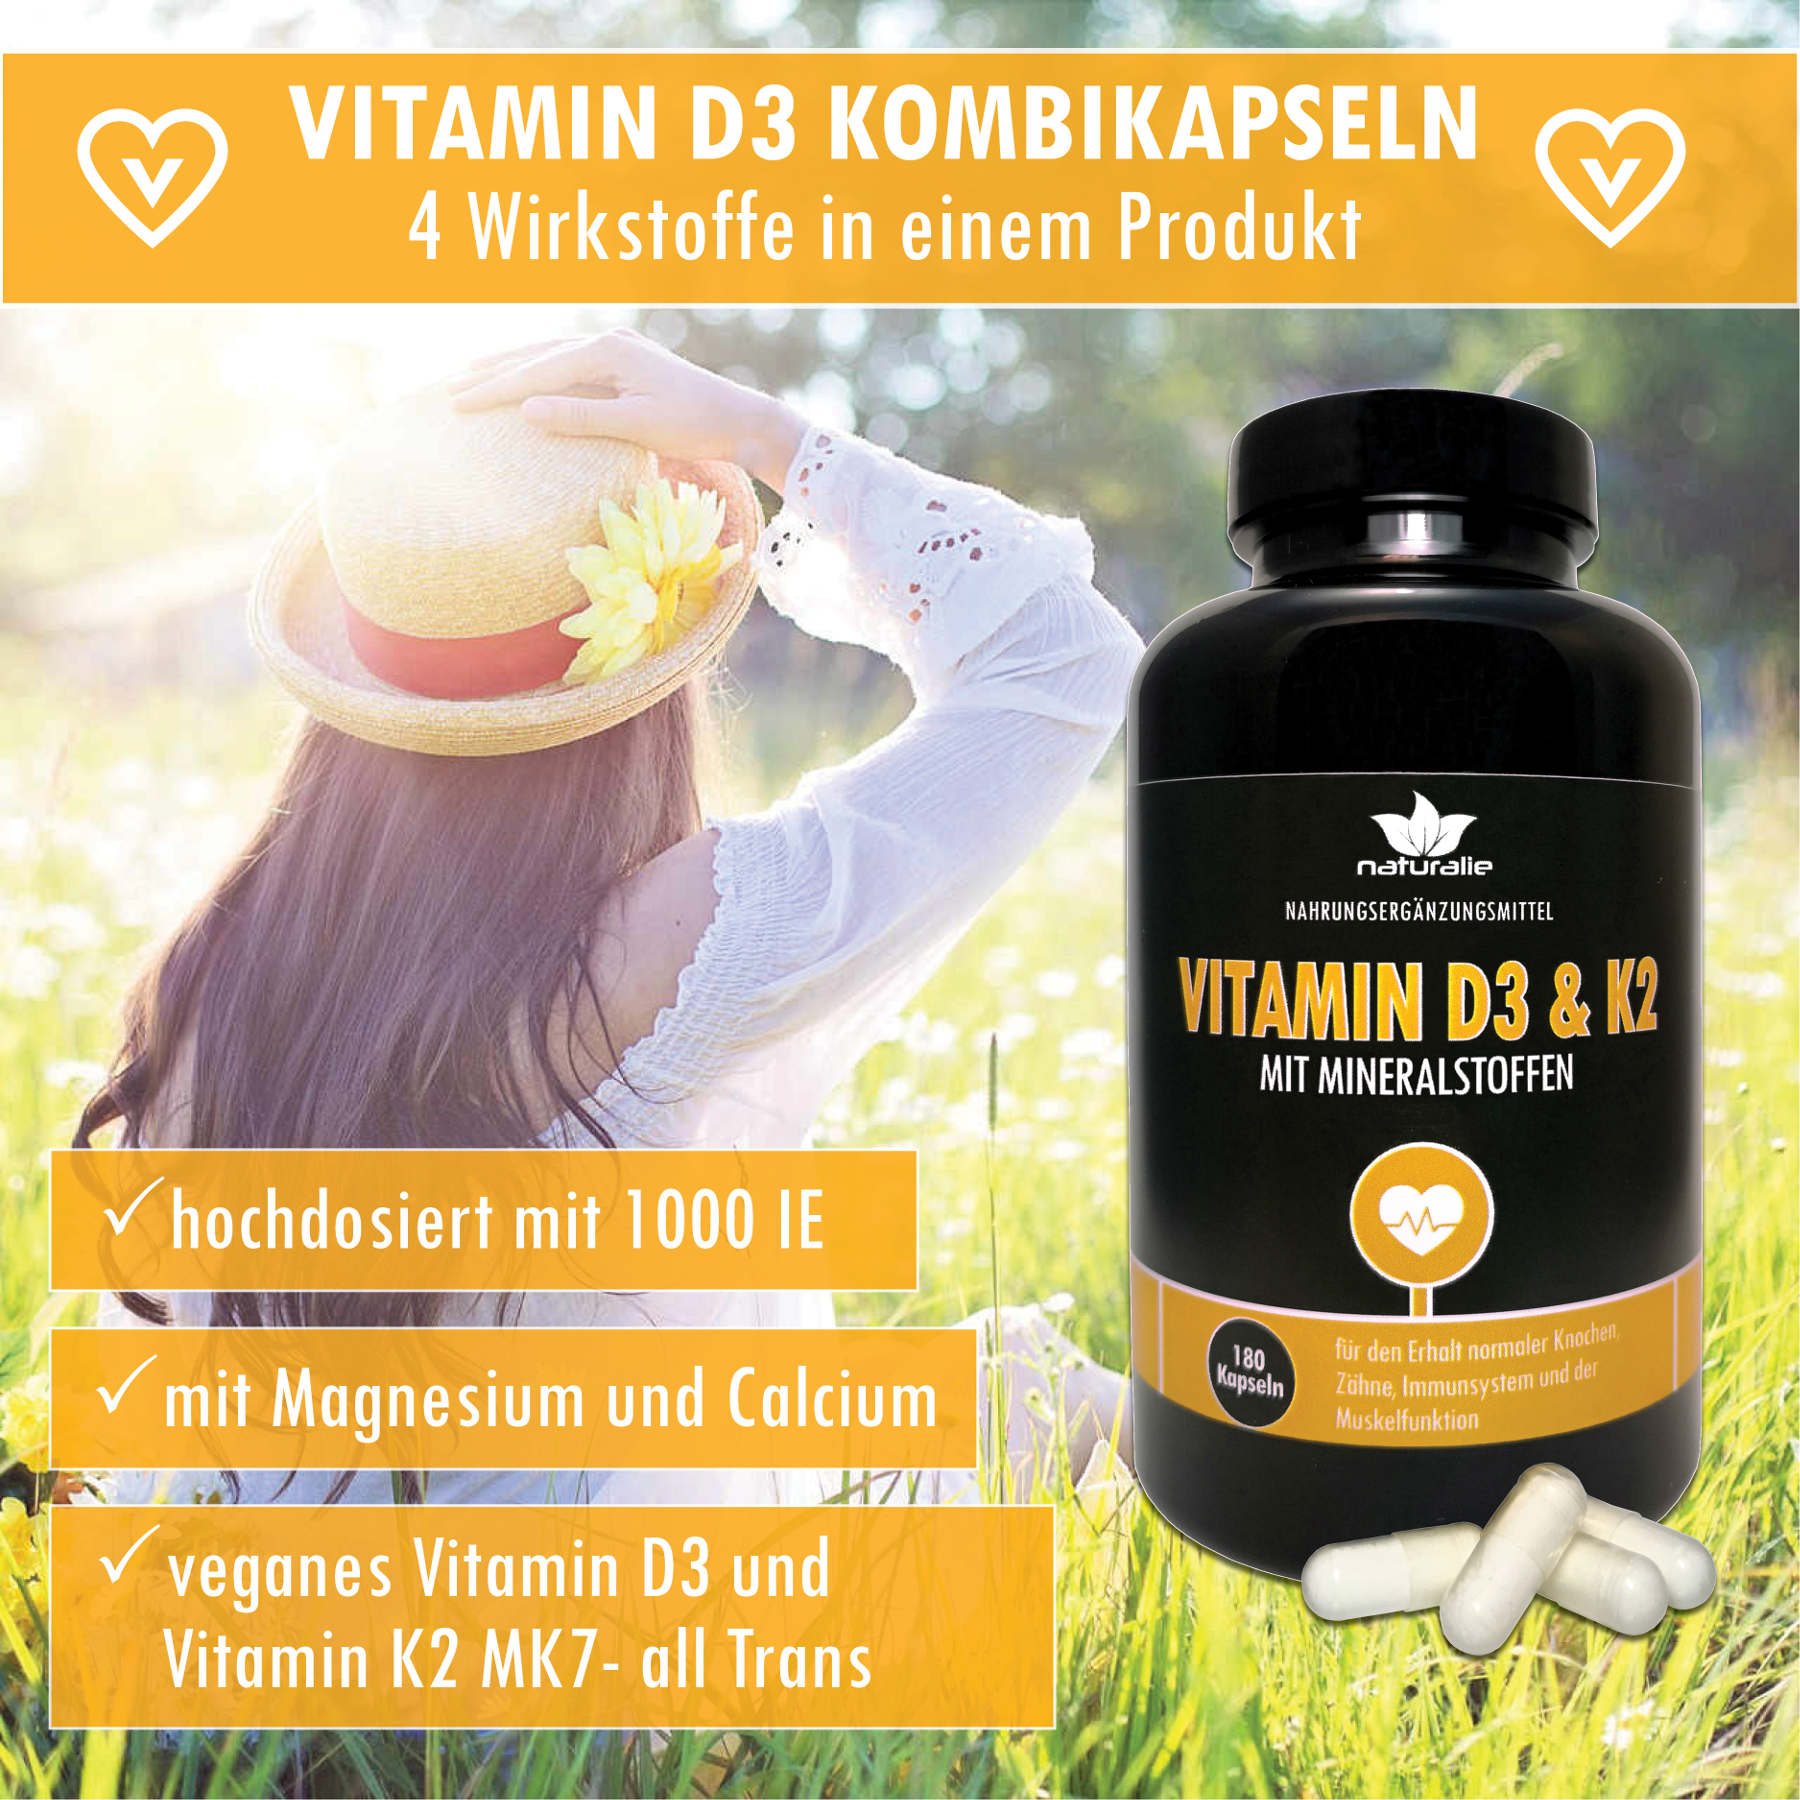 vitamin d3 und k2 mk7 hochdosiert vegan mit mineralstoffen doppelpack ebay. Black Bedroom Furniture Sets. Home Design Ideas